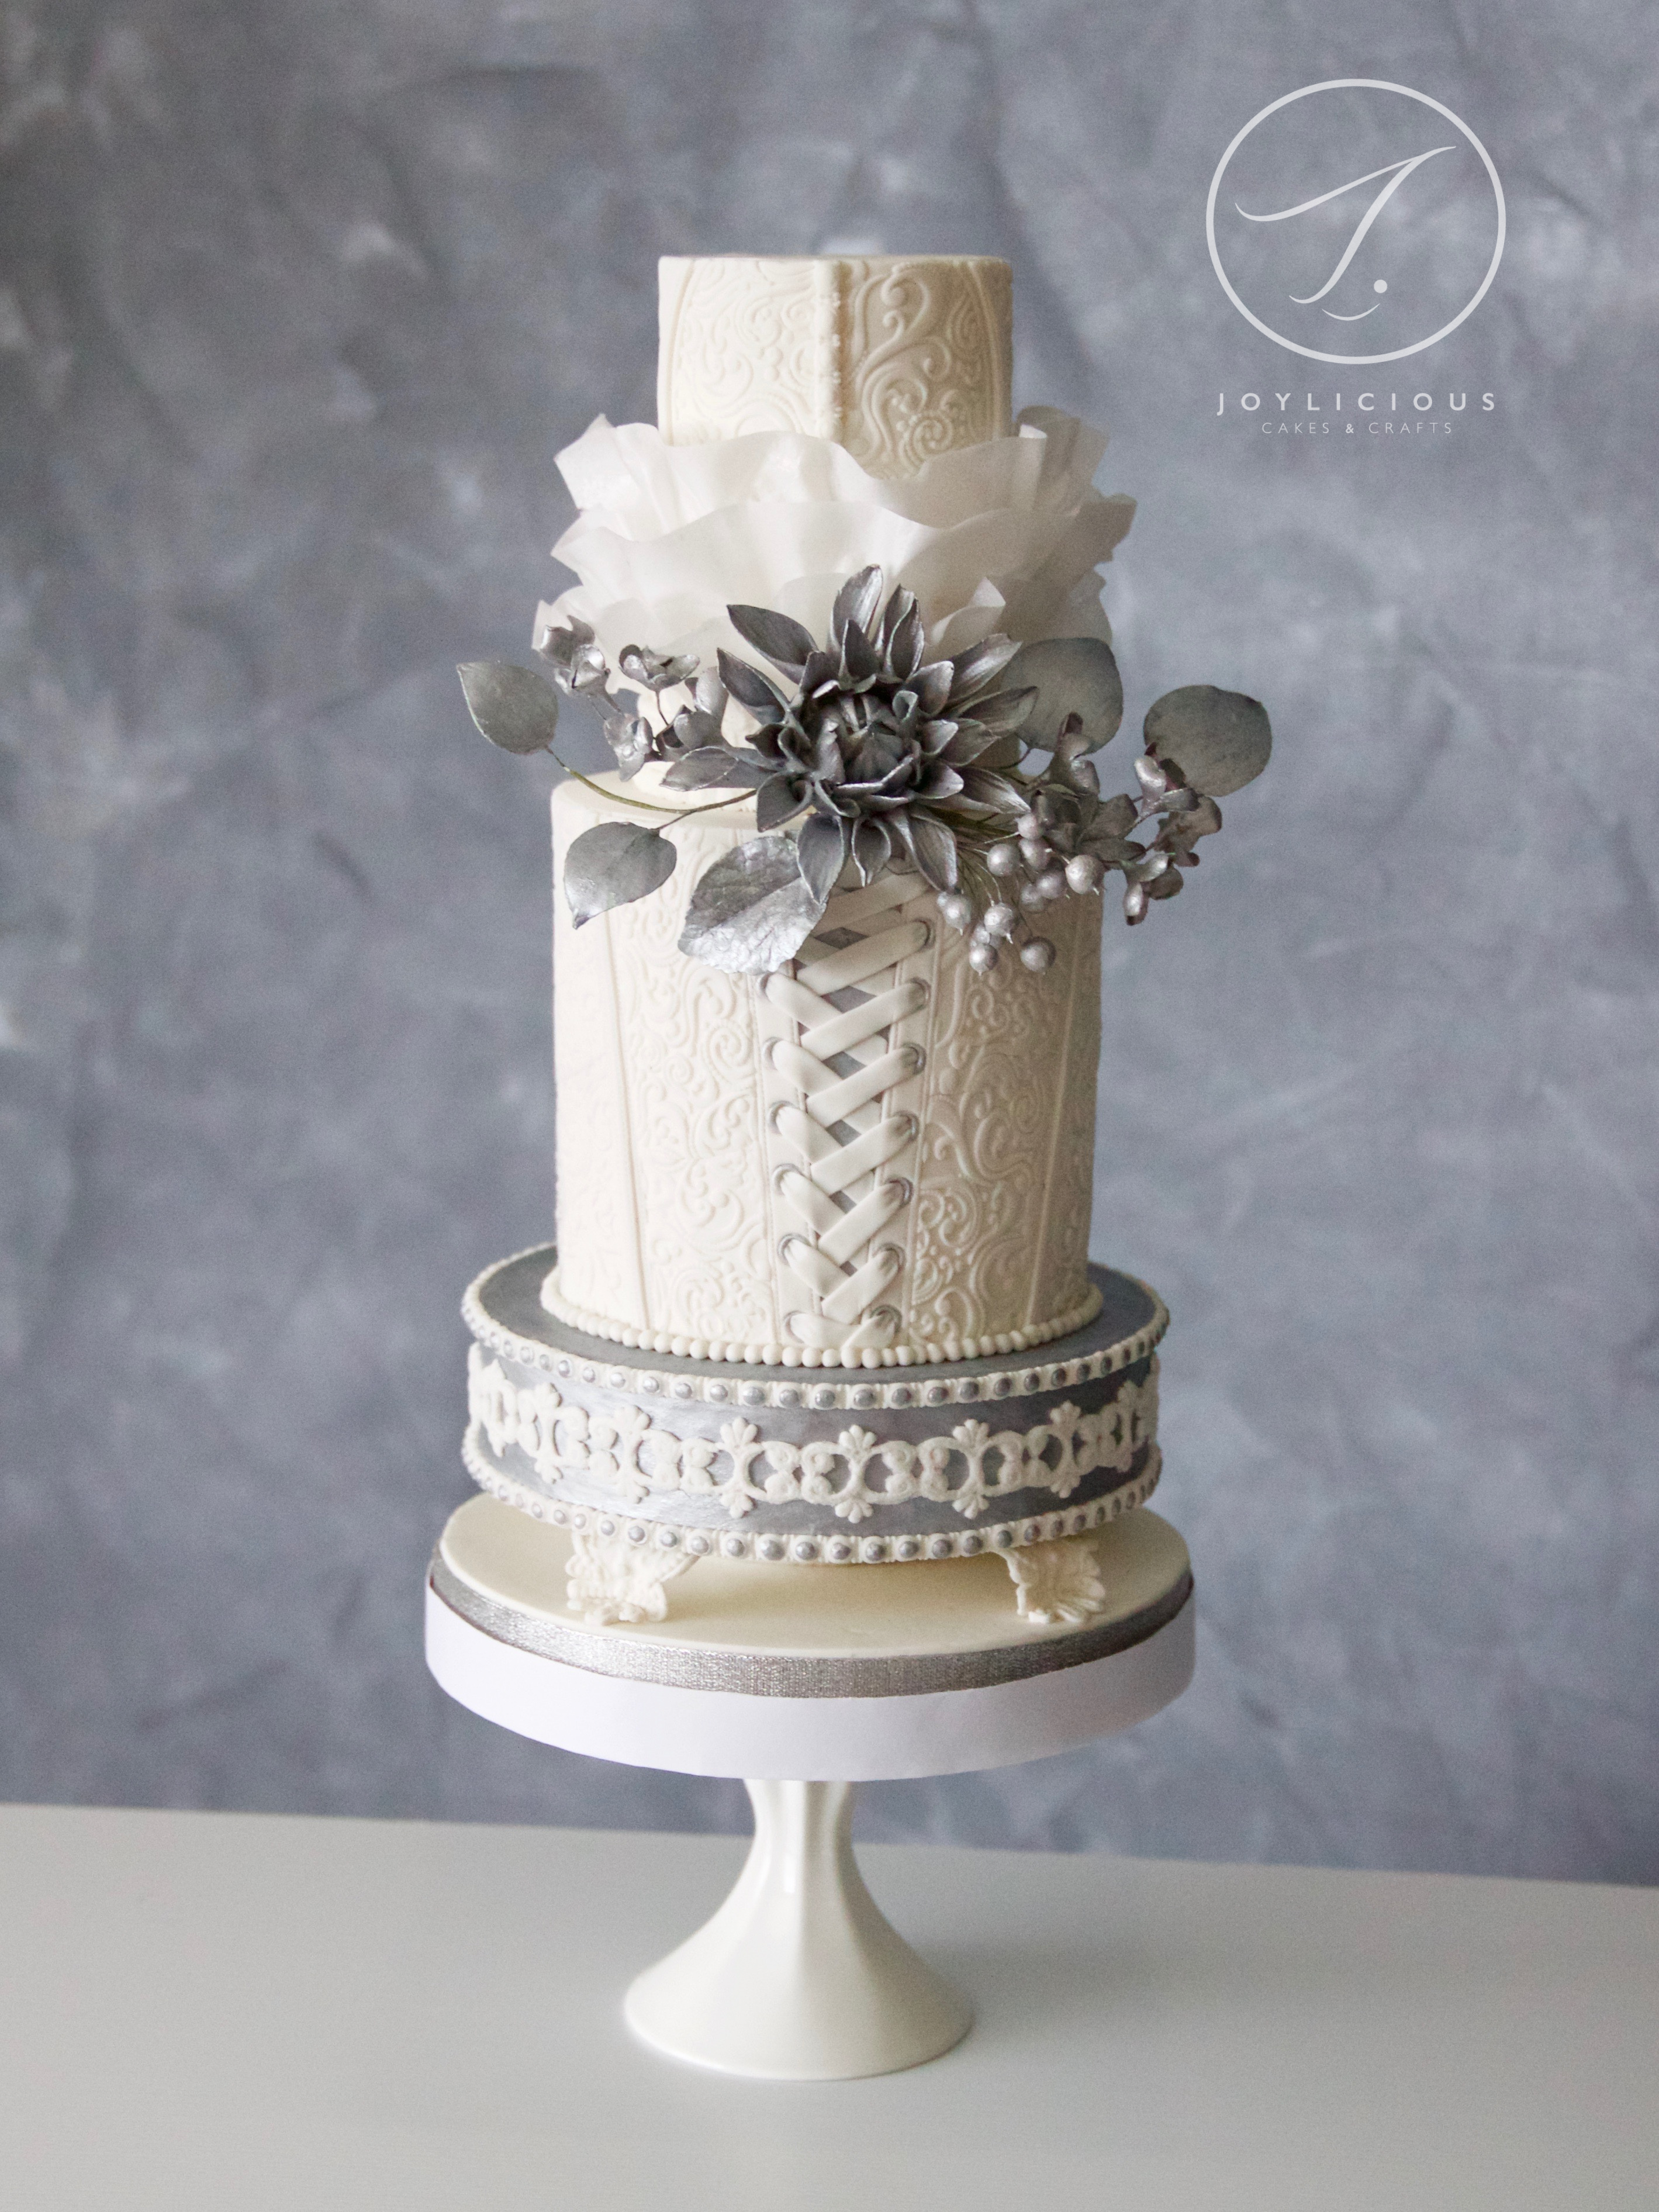 Roccoco White And Silver Wedding